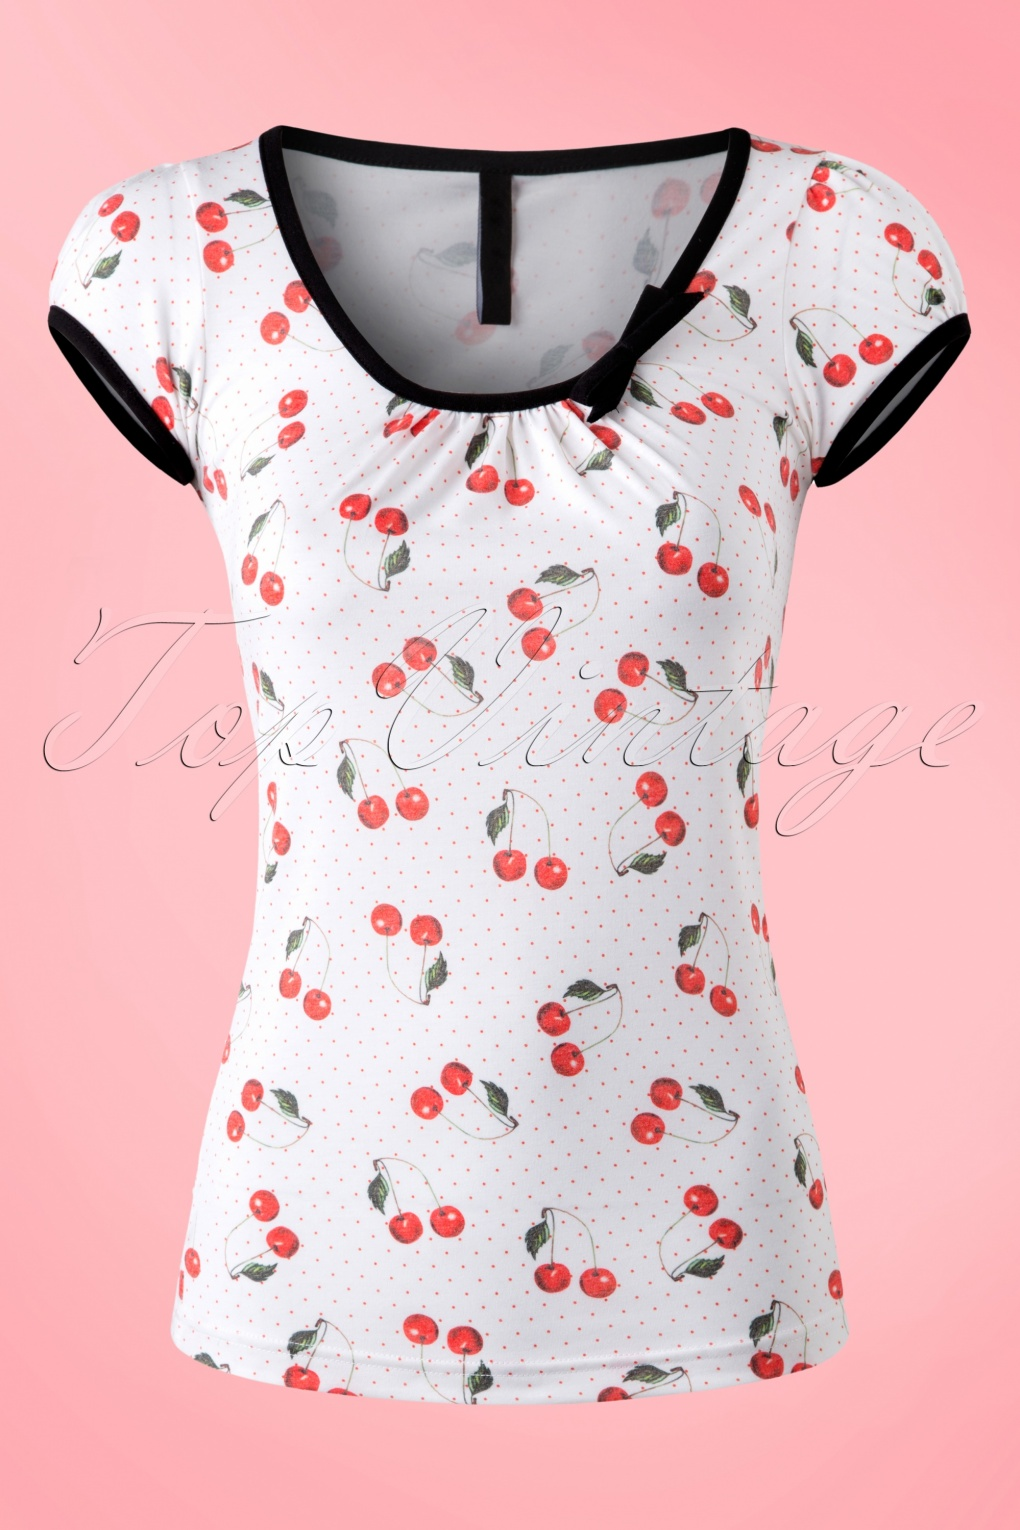 1950s Rockabilly & Pinup Tops, Shirts, Blouses 50s Leona Cherry Art Top in White and Red £26.02 AT vintagedancer.com